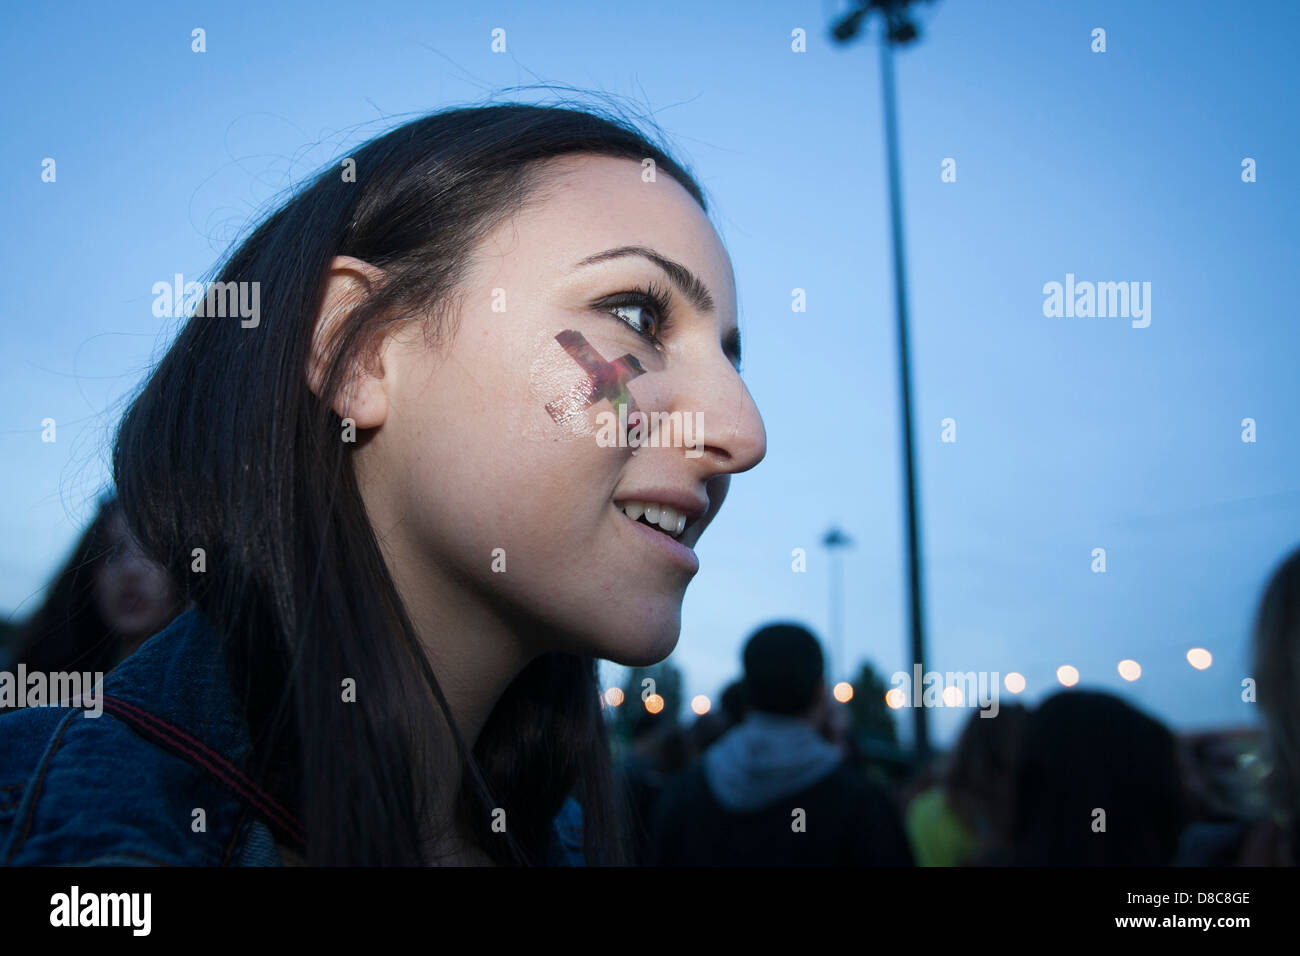 Fan of The XX with an X drawn on her face at the Night and Day festival, in Lisbon, Portugal. - Stock Image